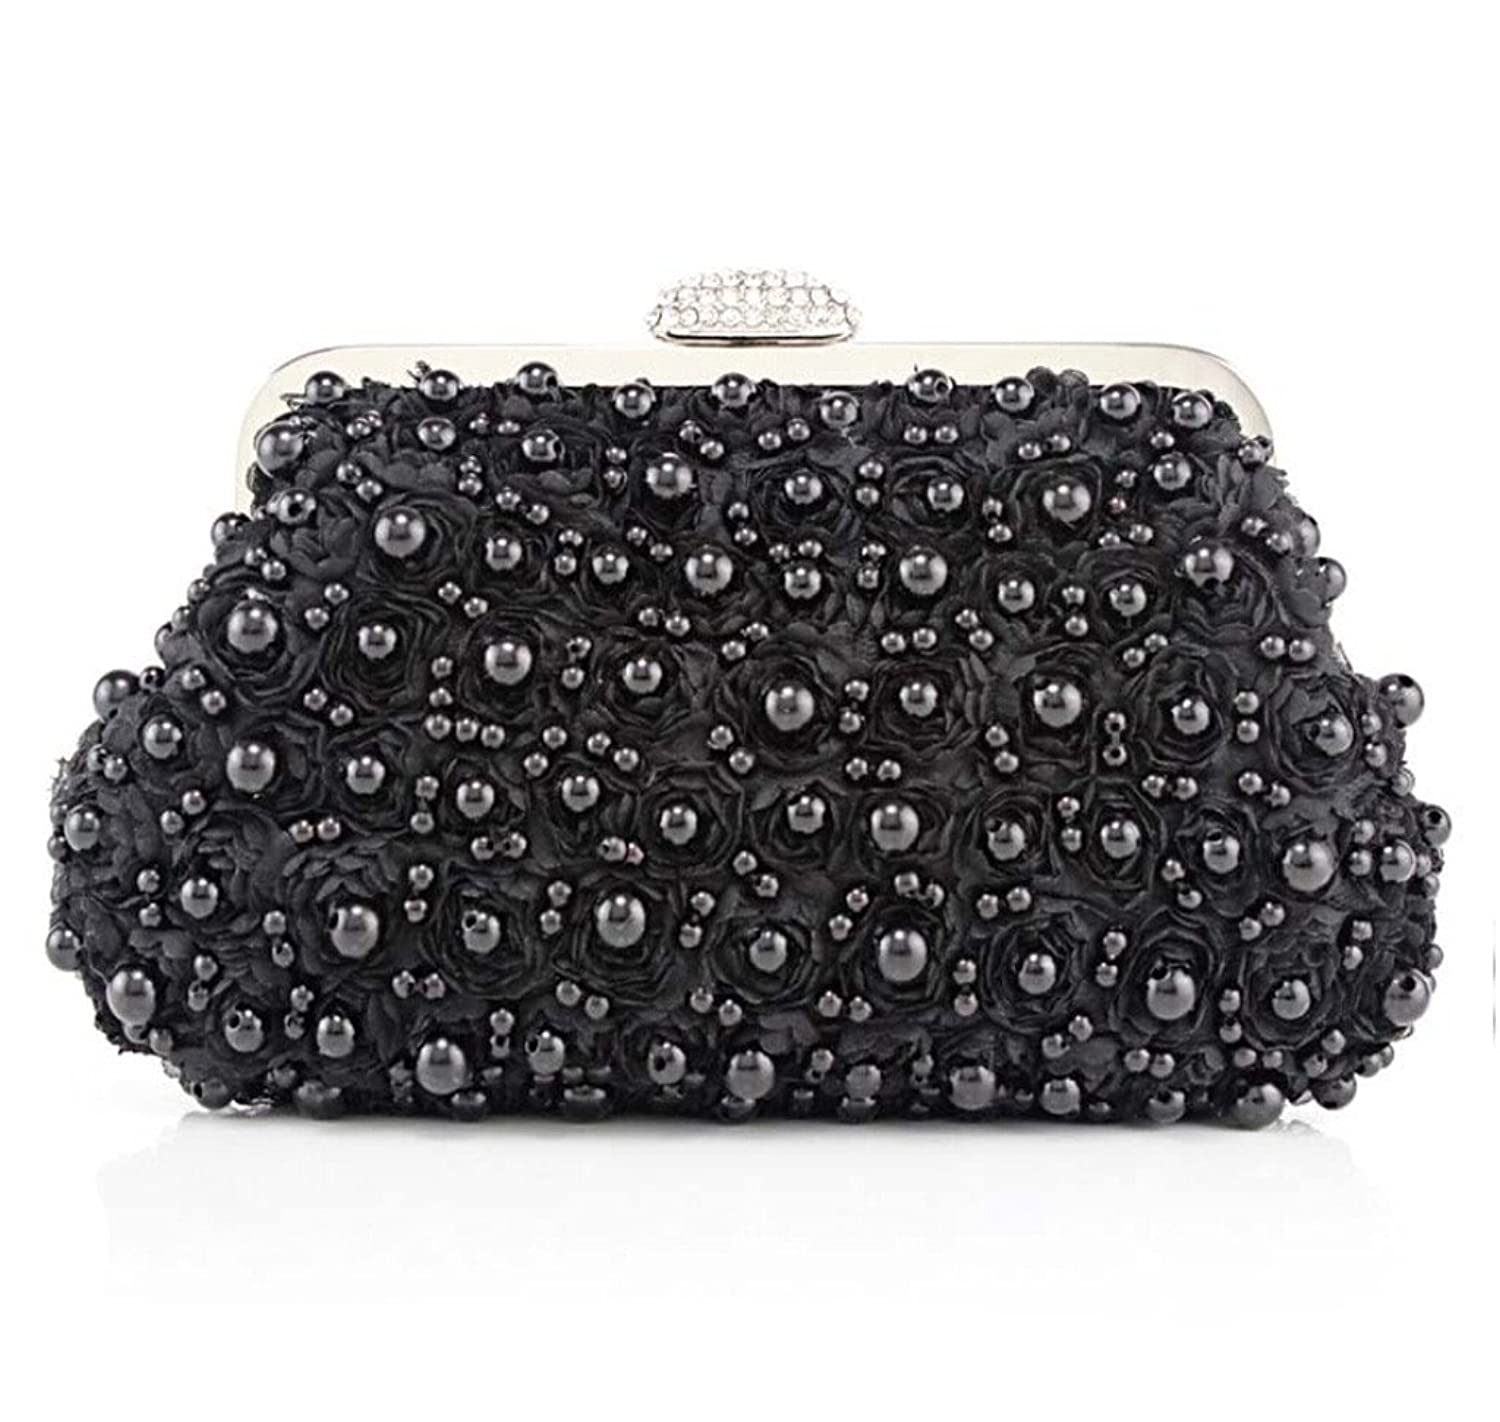 Abless Womens Faux Pearl Beads Lace Flower Evening Clutch Fashion Purse - Black